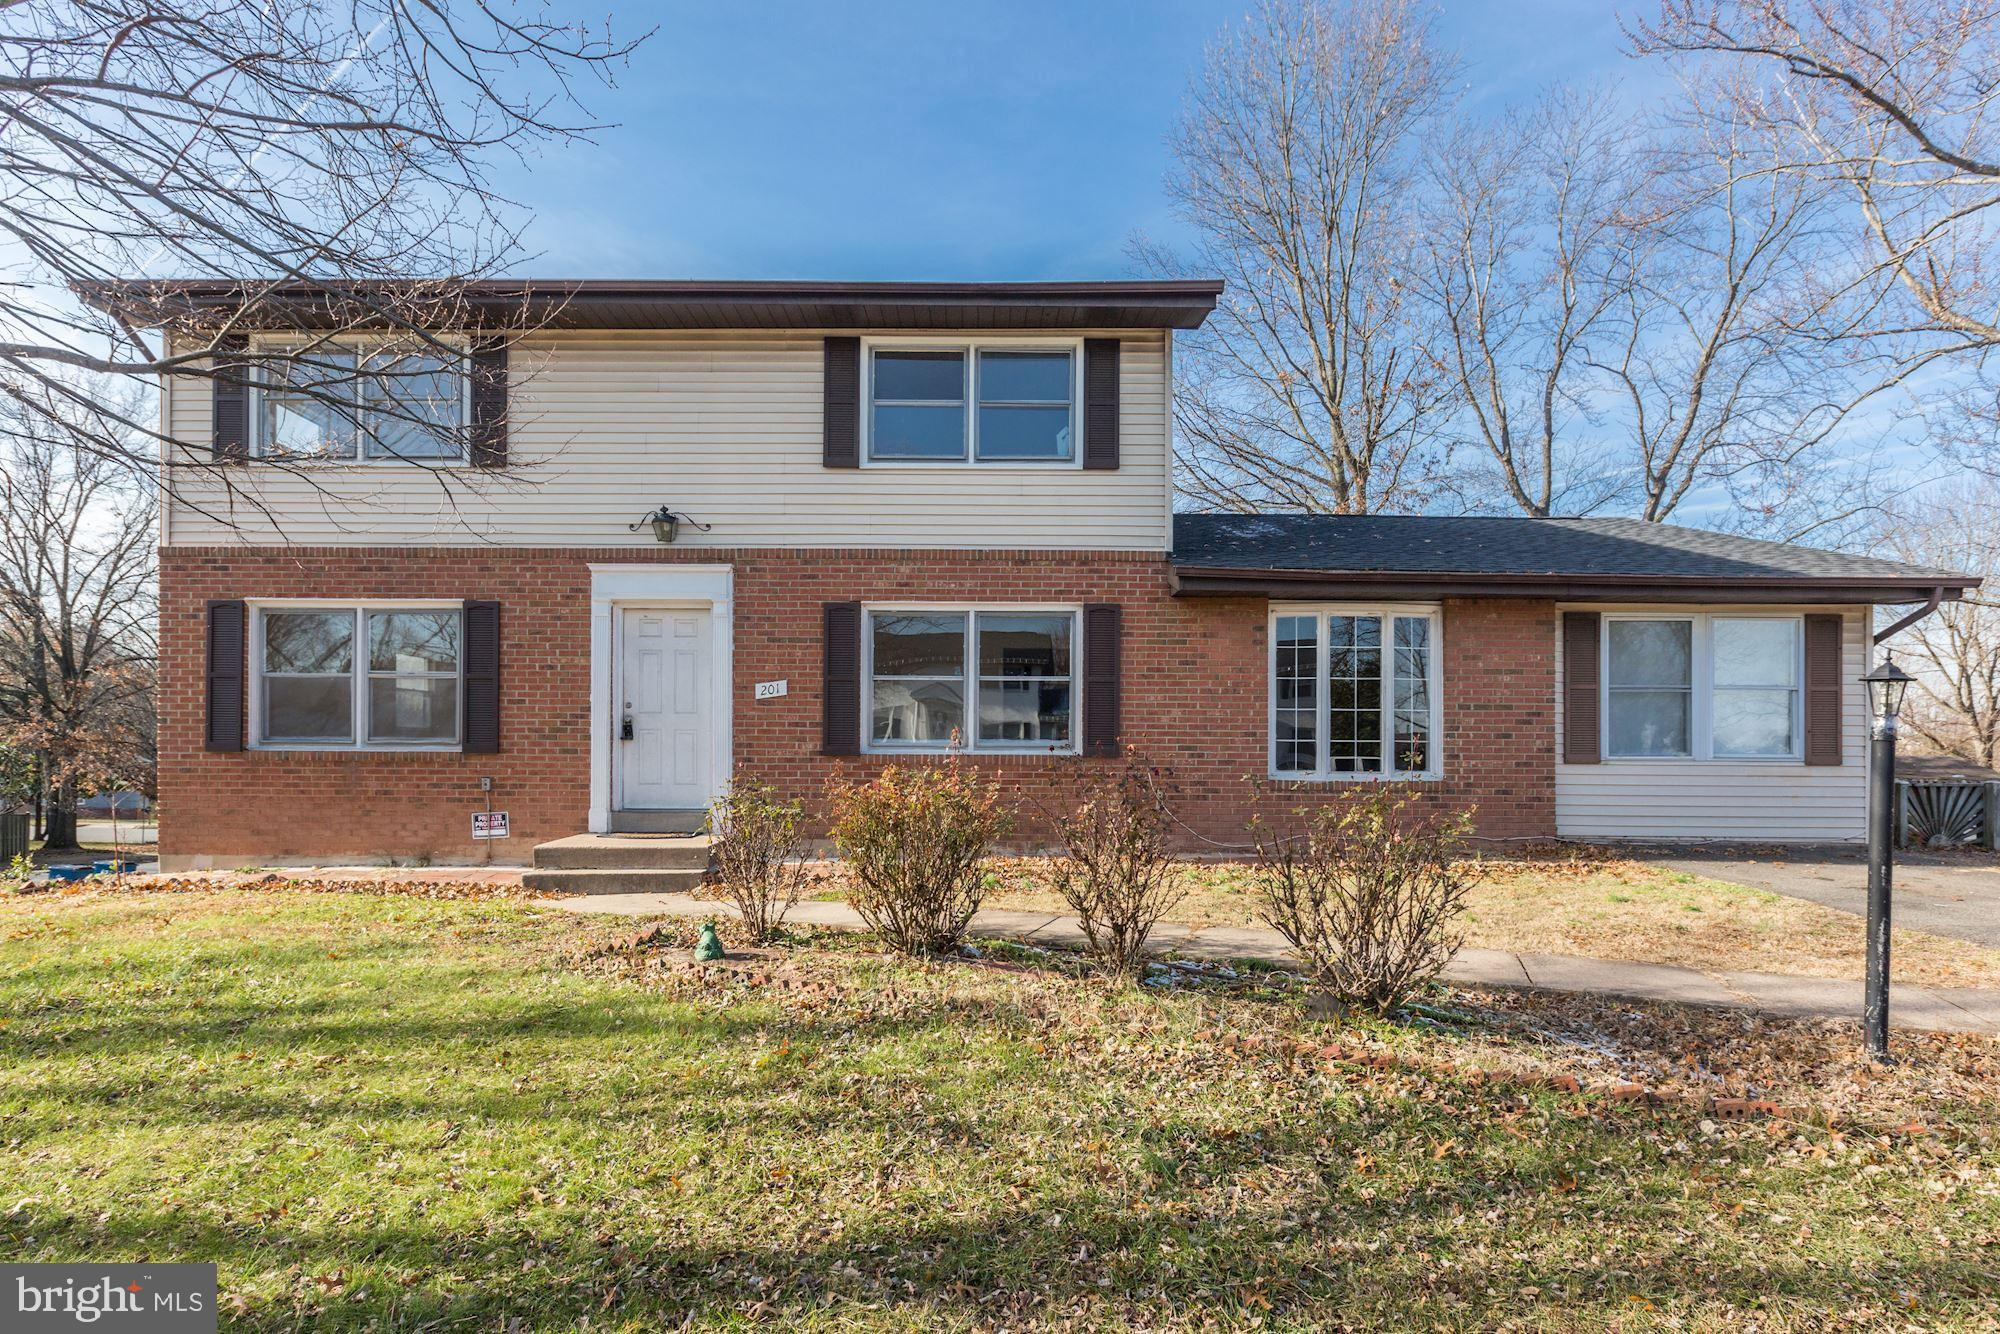 Best Deal in Sterling! An Investor's dream! Priced to sell fast and unbelievably below market value!